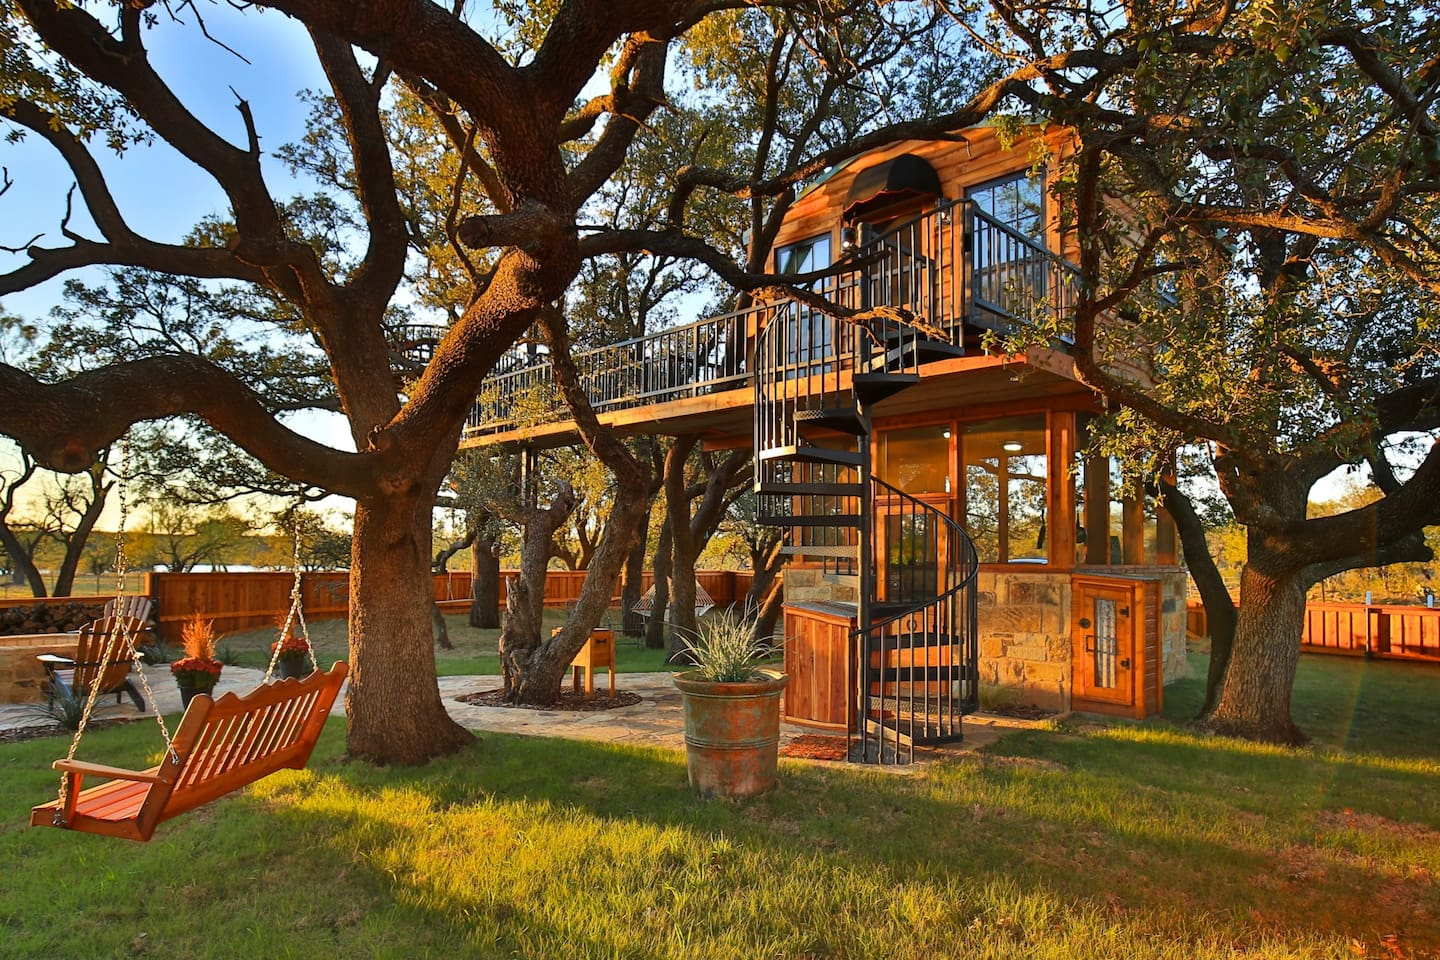 The front yard of the treehouse